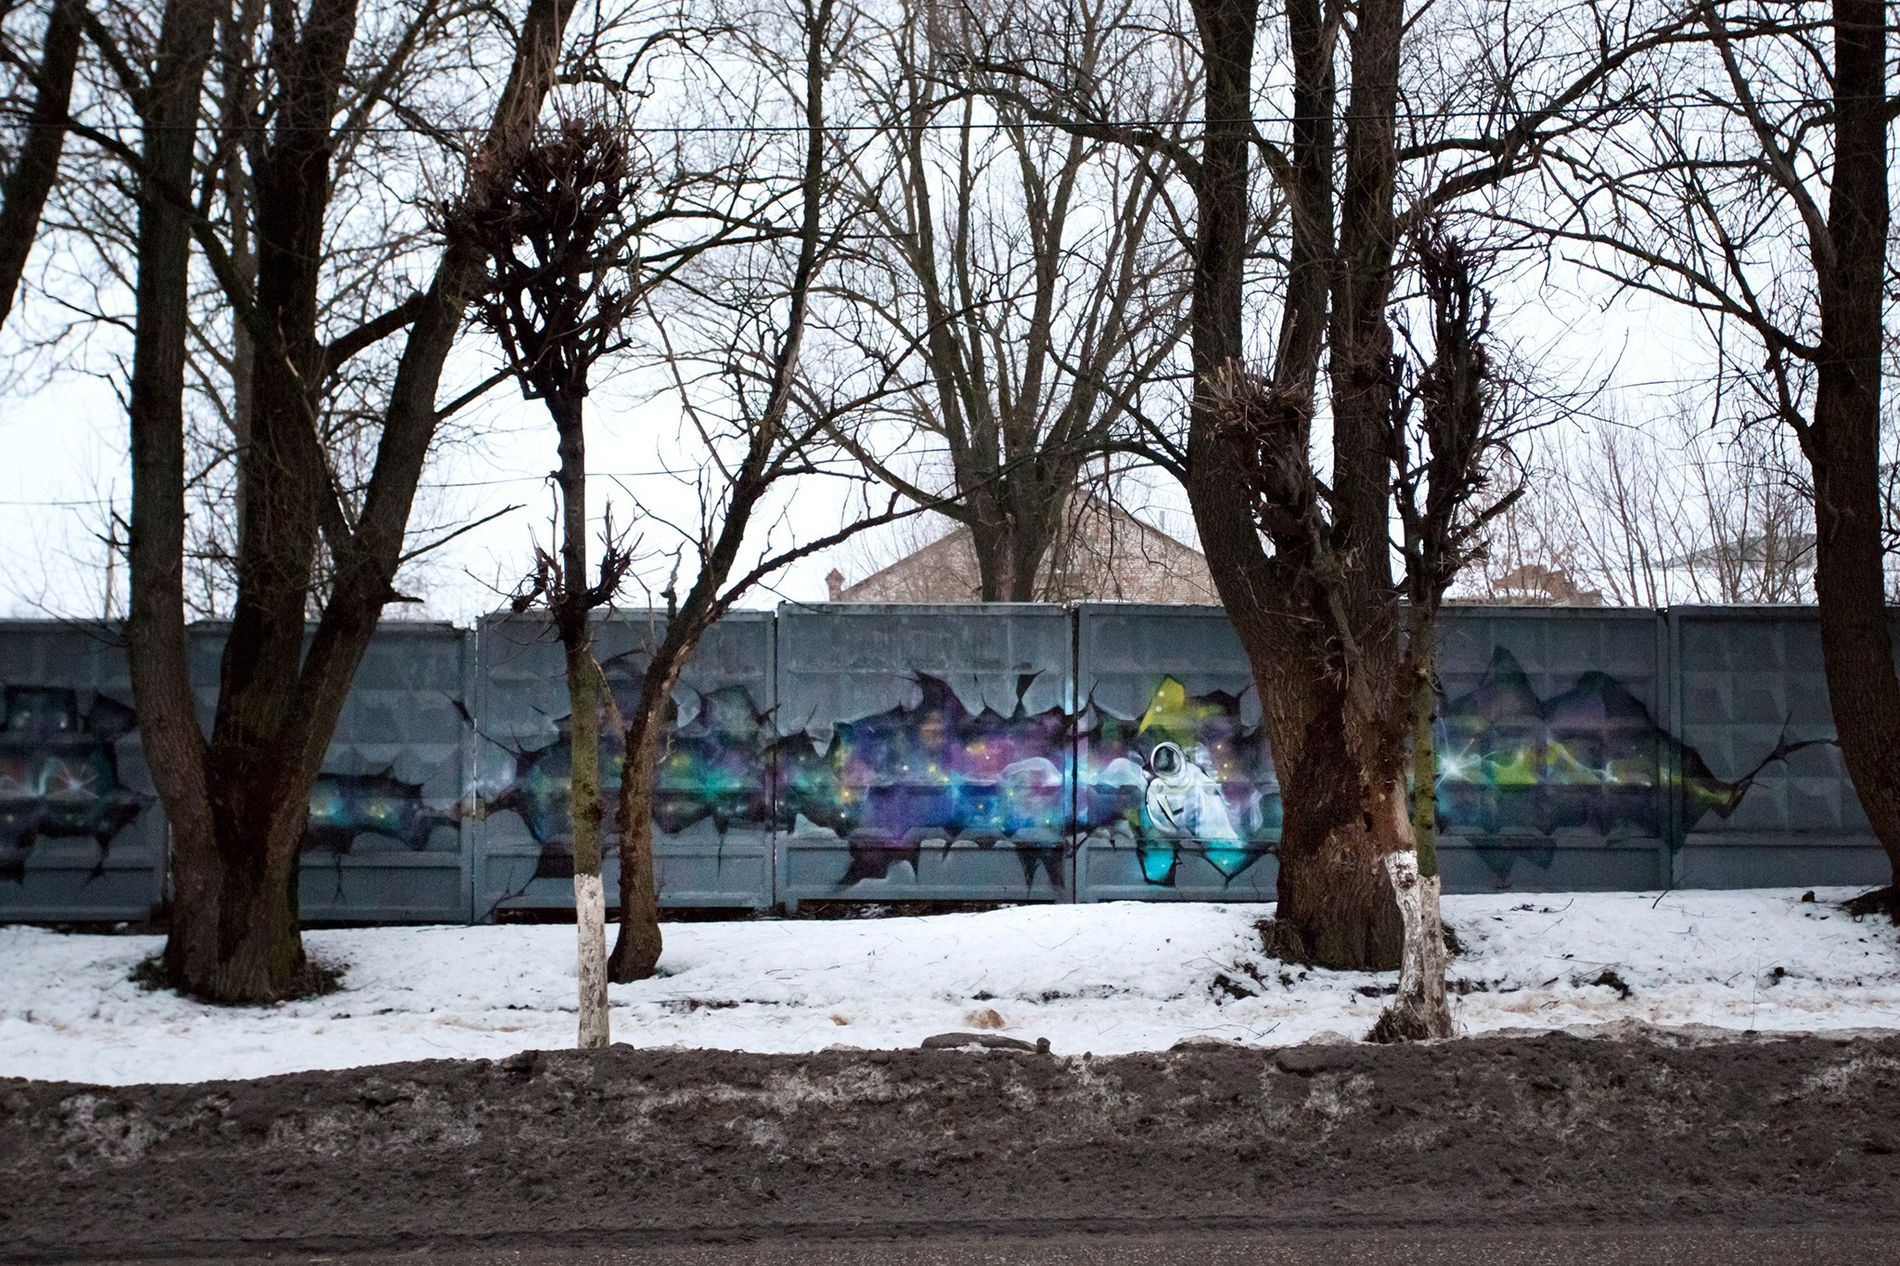 Space-themed graffiti decorates a concrete fence on Gagarin Street in the Russian town of Gagarin.